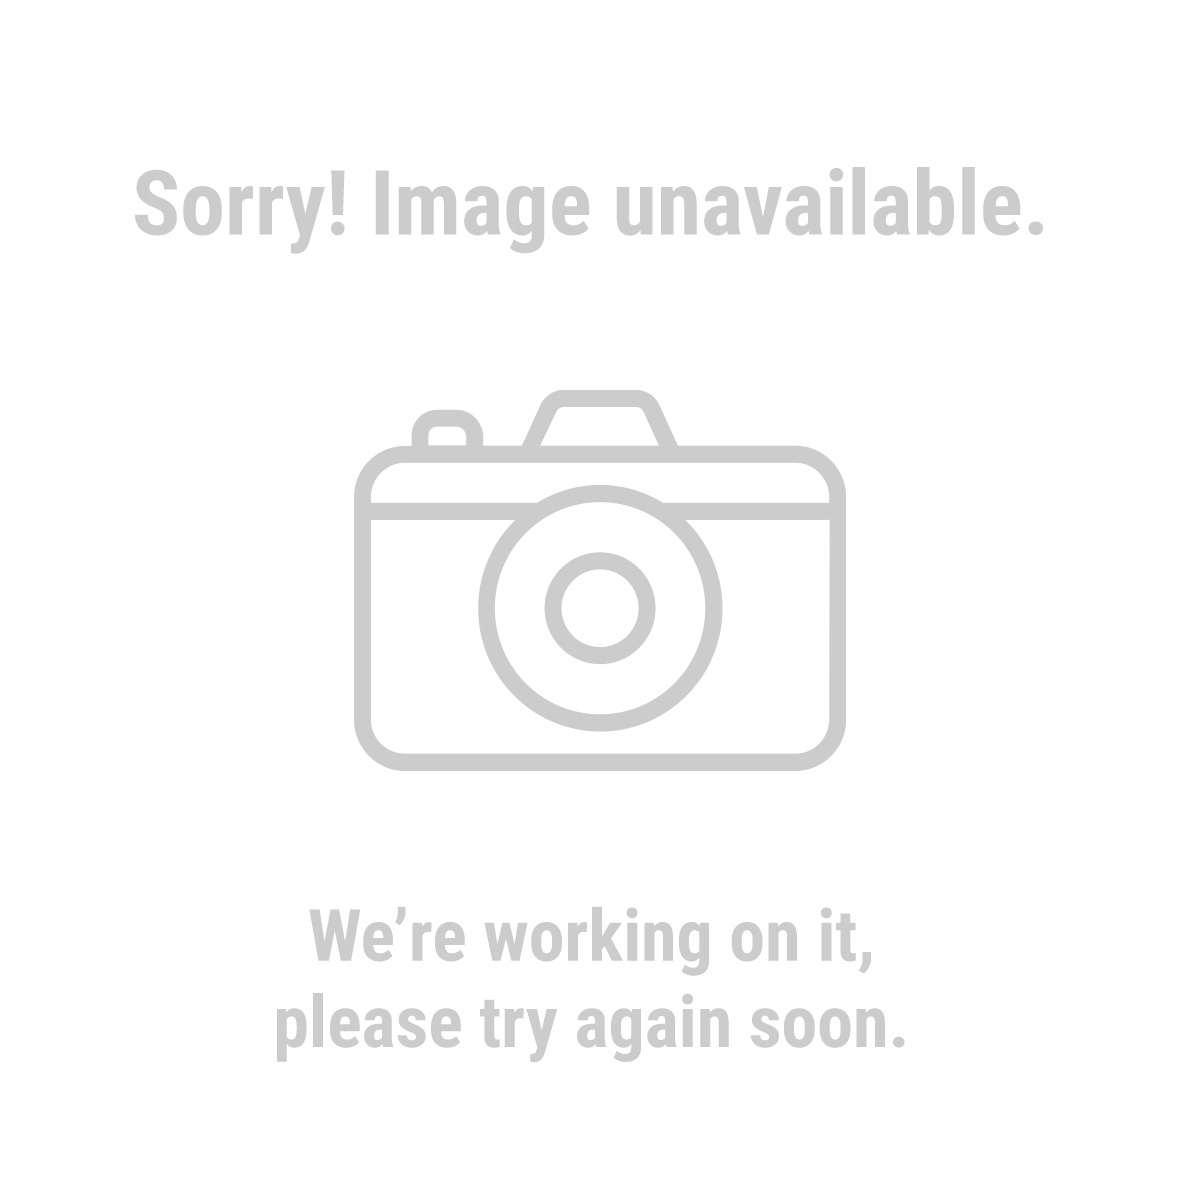 Storehouse 61930 16 In. x 30 In.Two Shelf Industrial Polypropylene Service Cart